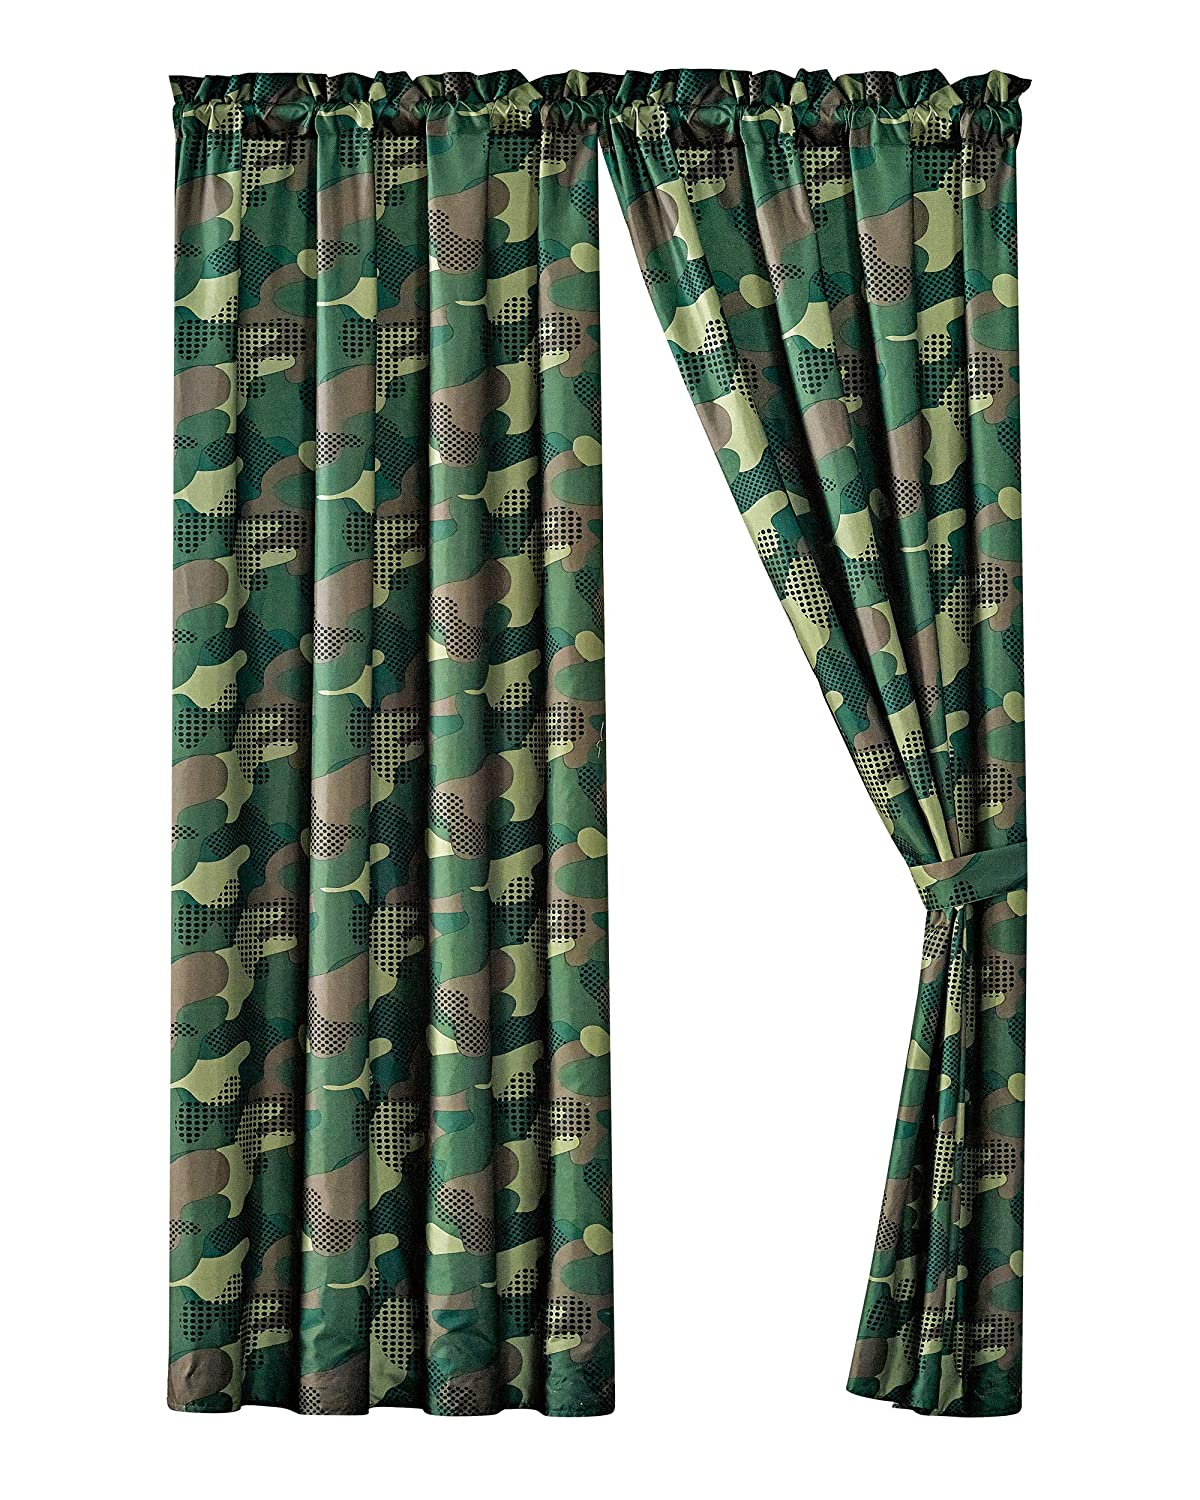 WPM Kids Collection Bedding 4 Piece Army Green Curtain Set Window Panels tie Backs Military Camo Print Design (Camouflage Military, Curtain Set)